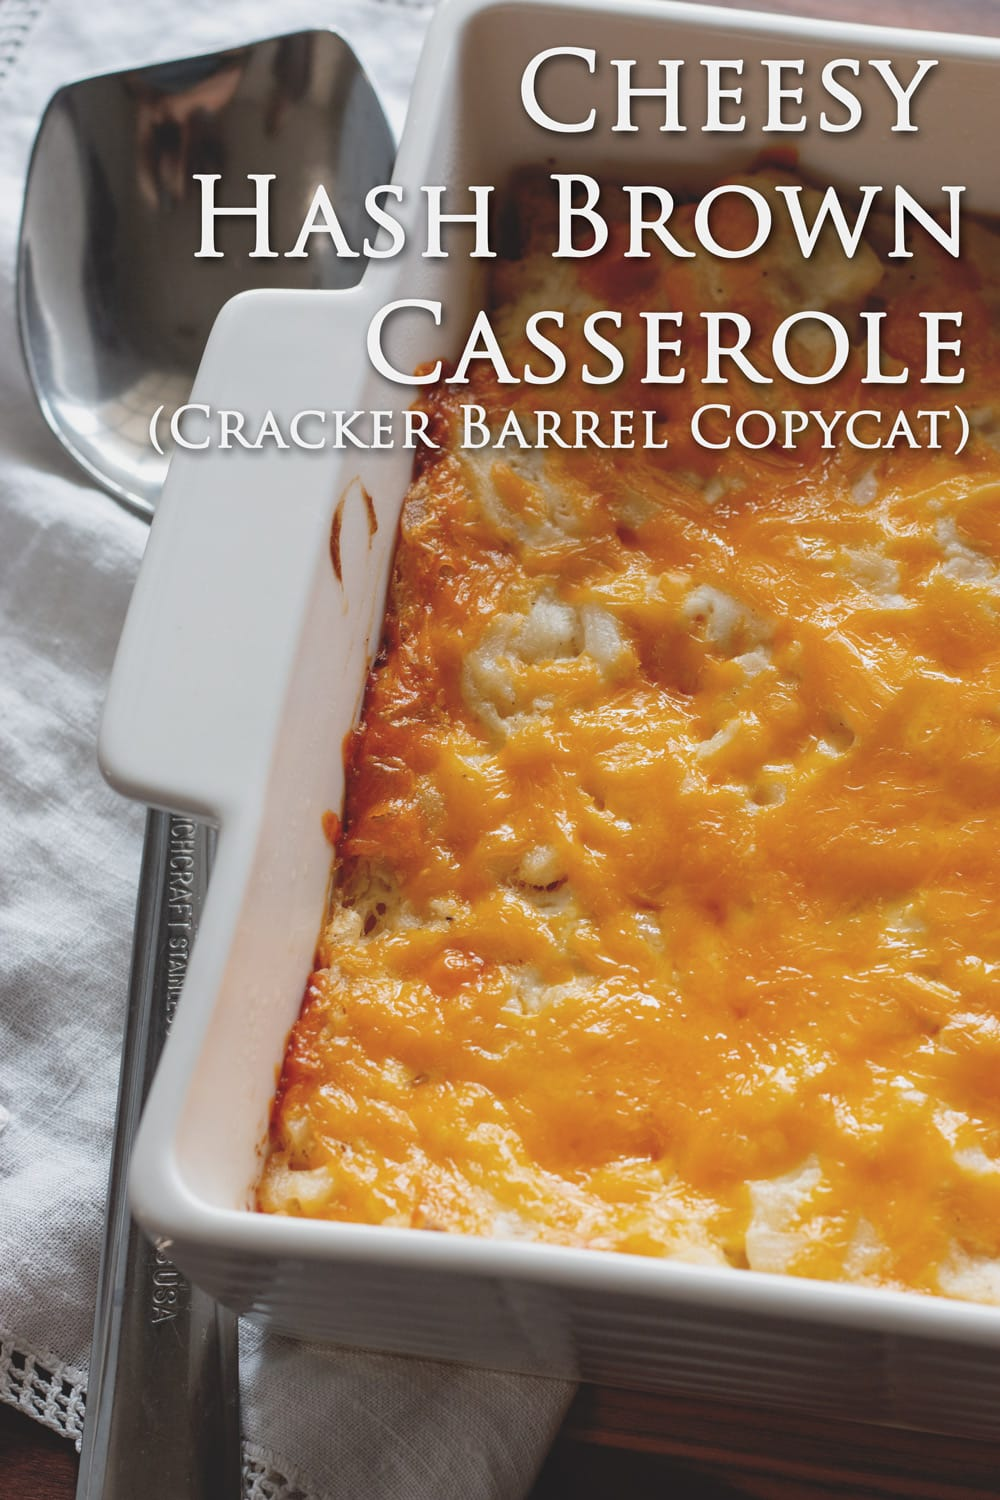 How to make Cheesy Hash Brown Casserole - a Cracker Barrel Copycat Recipe